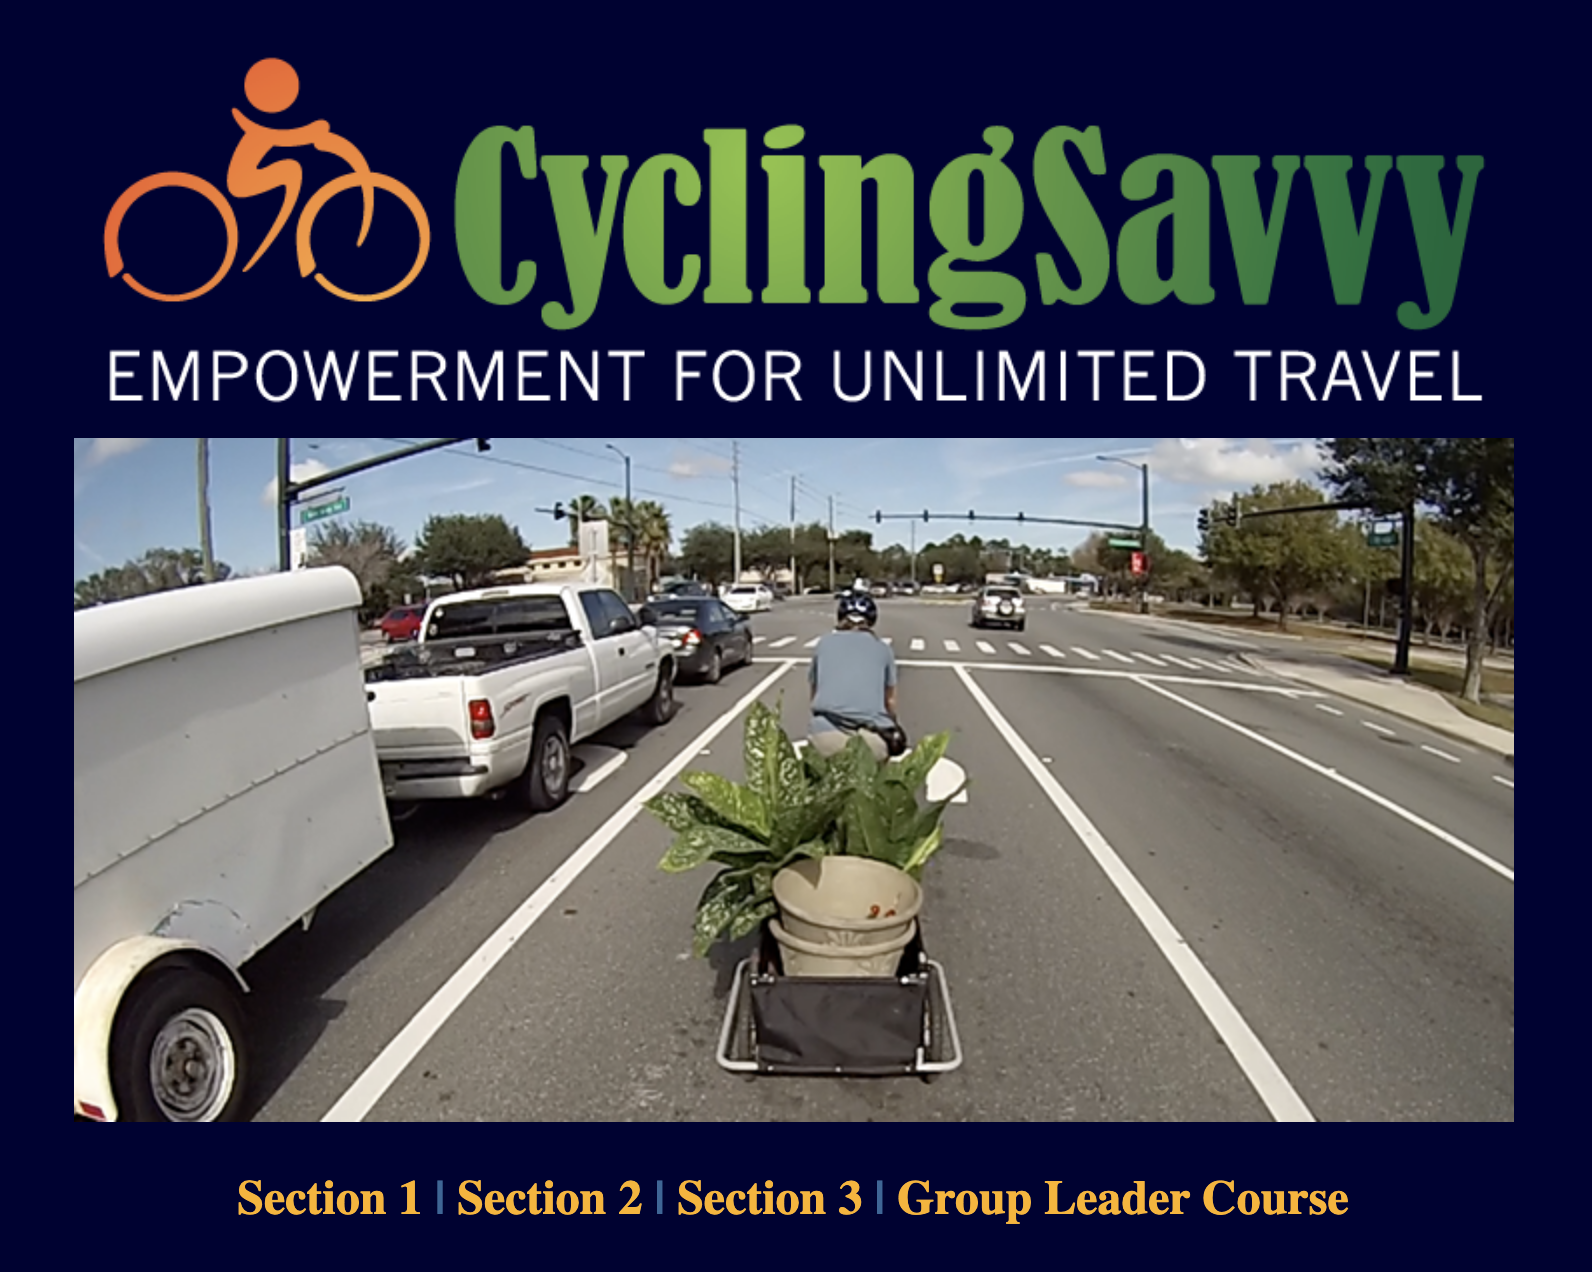 cycling savvy course slide